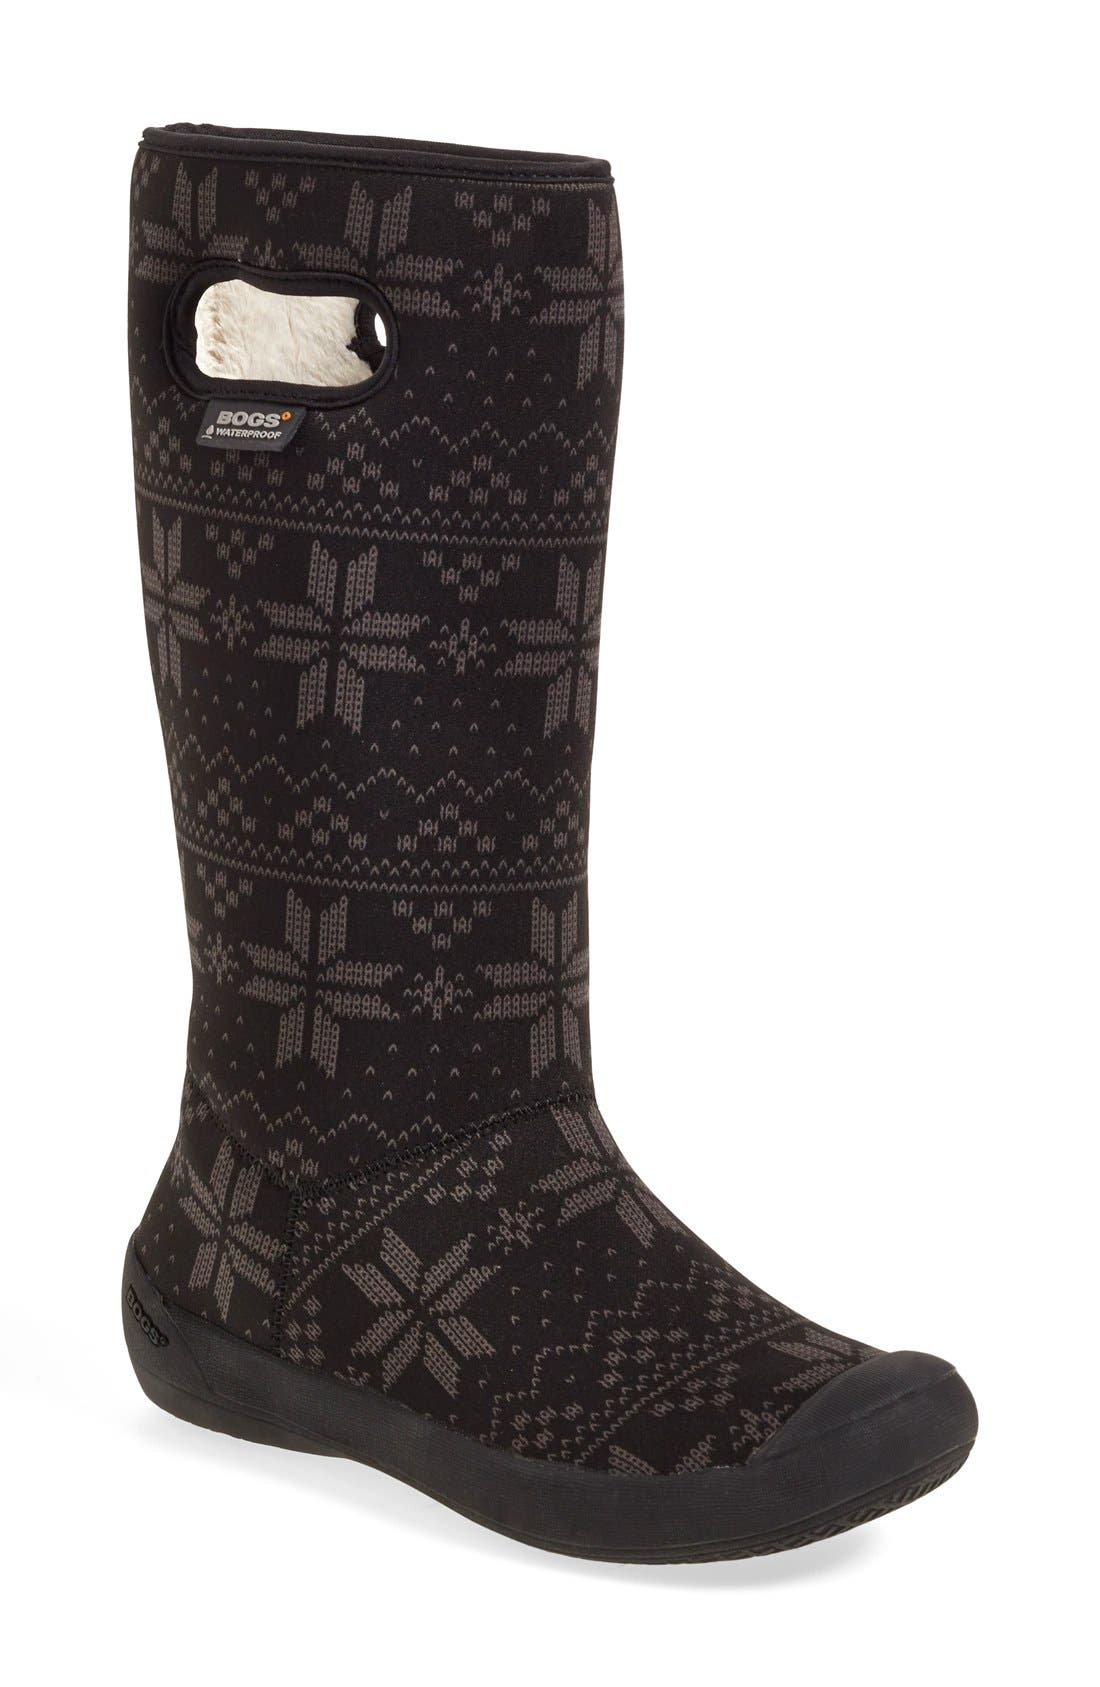 Alternate Image 1 Selected - Bogs 'Summit - Sweater' Waterproof Boot (Women)